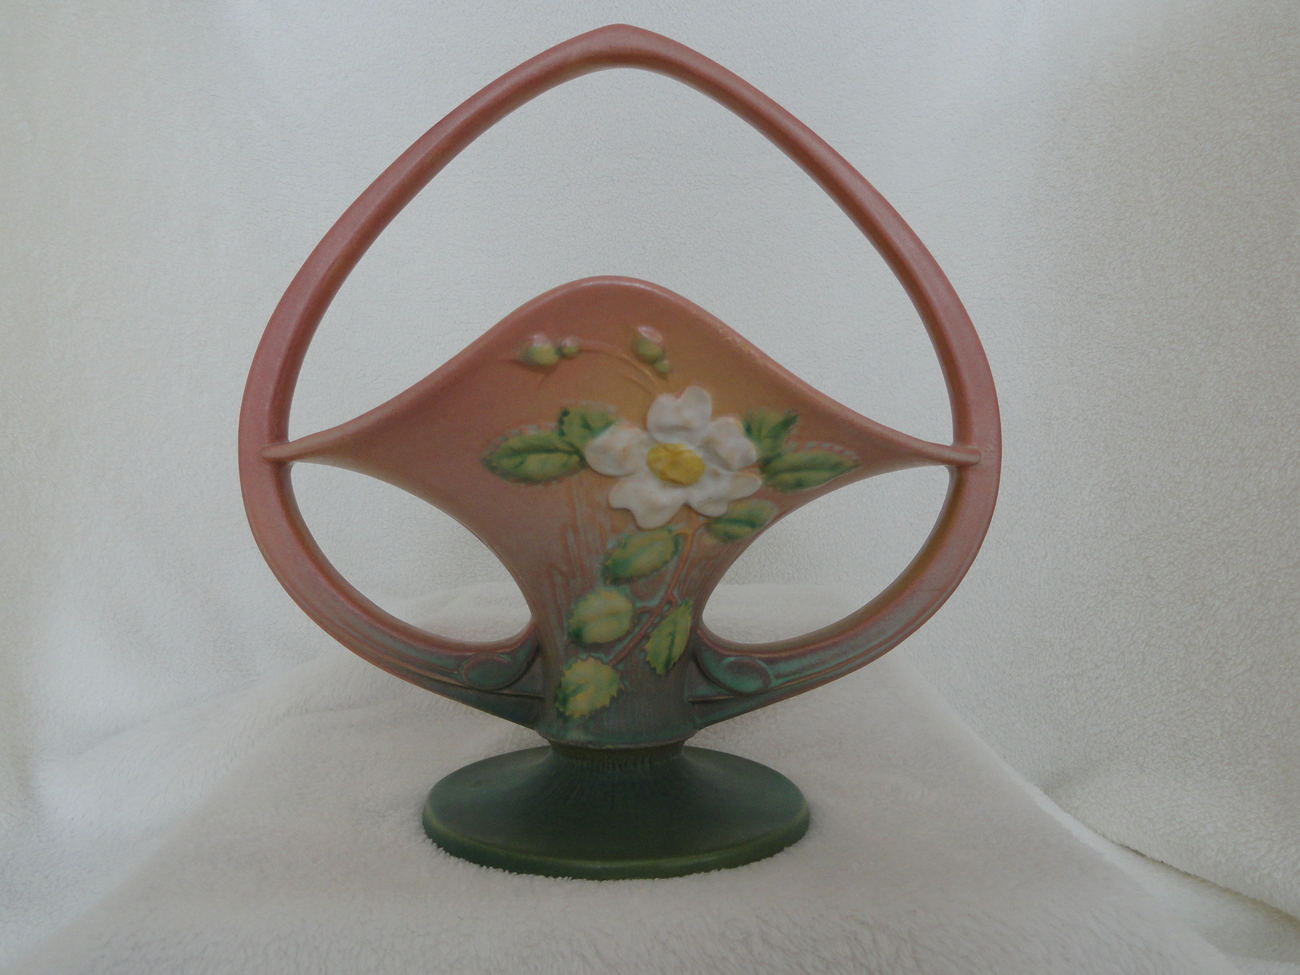 Roseville usa art pottery white rose pattern pink basket for Pottery patterns